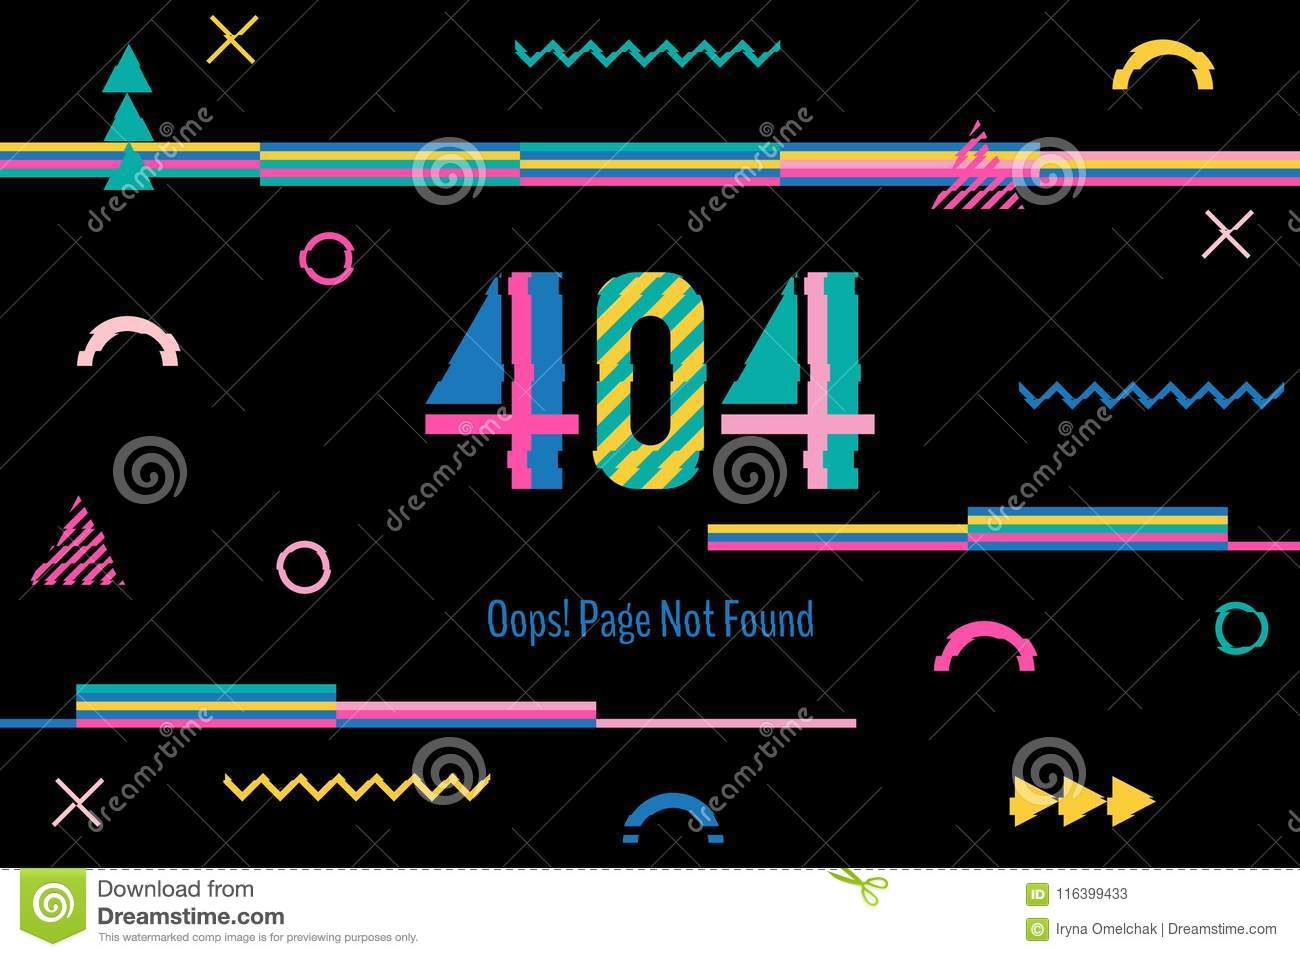 boat electrical wiring diagram 404 page not found error ever pdf  hight resolution of boat electrical wiring diagrams 404 page not found error ever boat electrical wiring